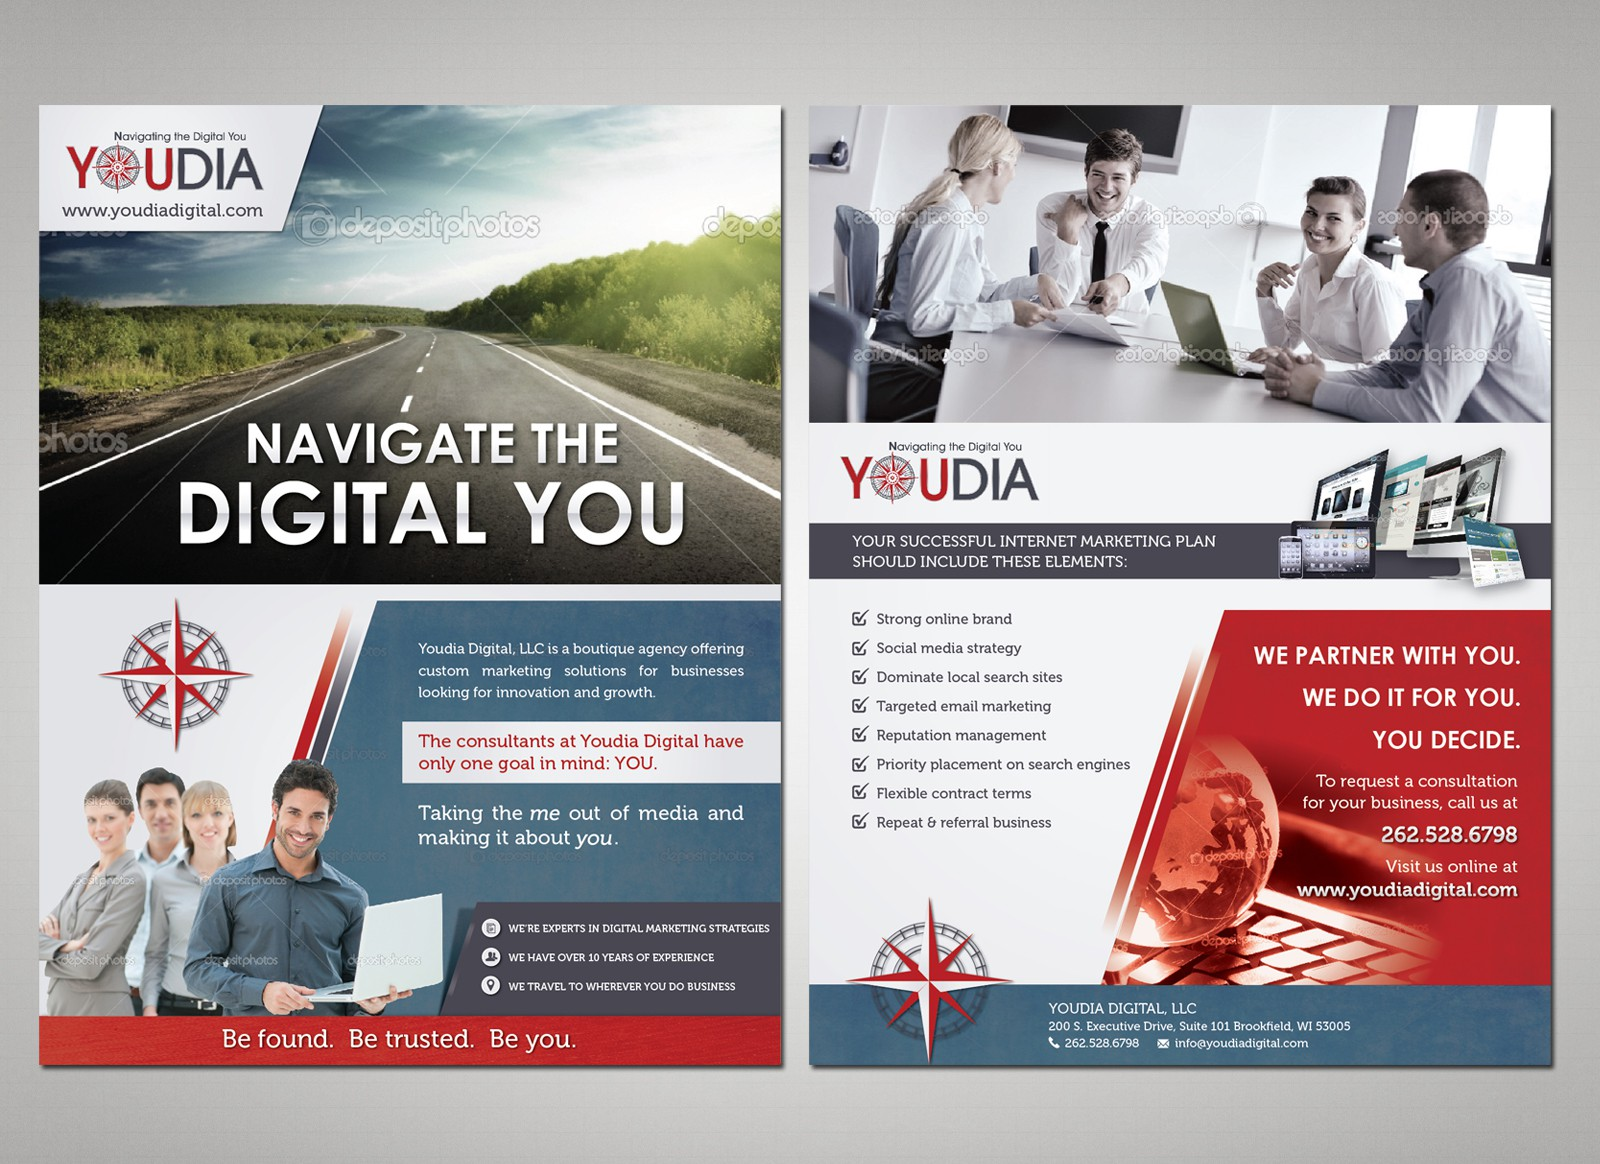 Help Youdia Digital, LLC with a new postcard or flyer